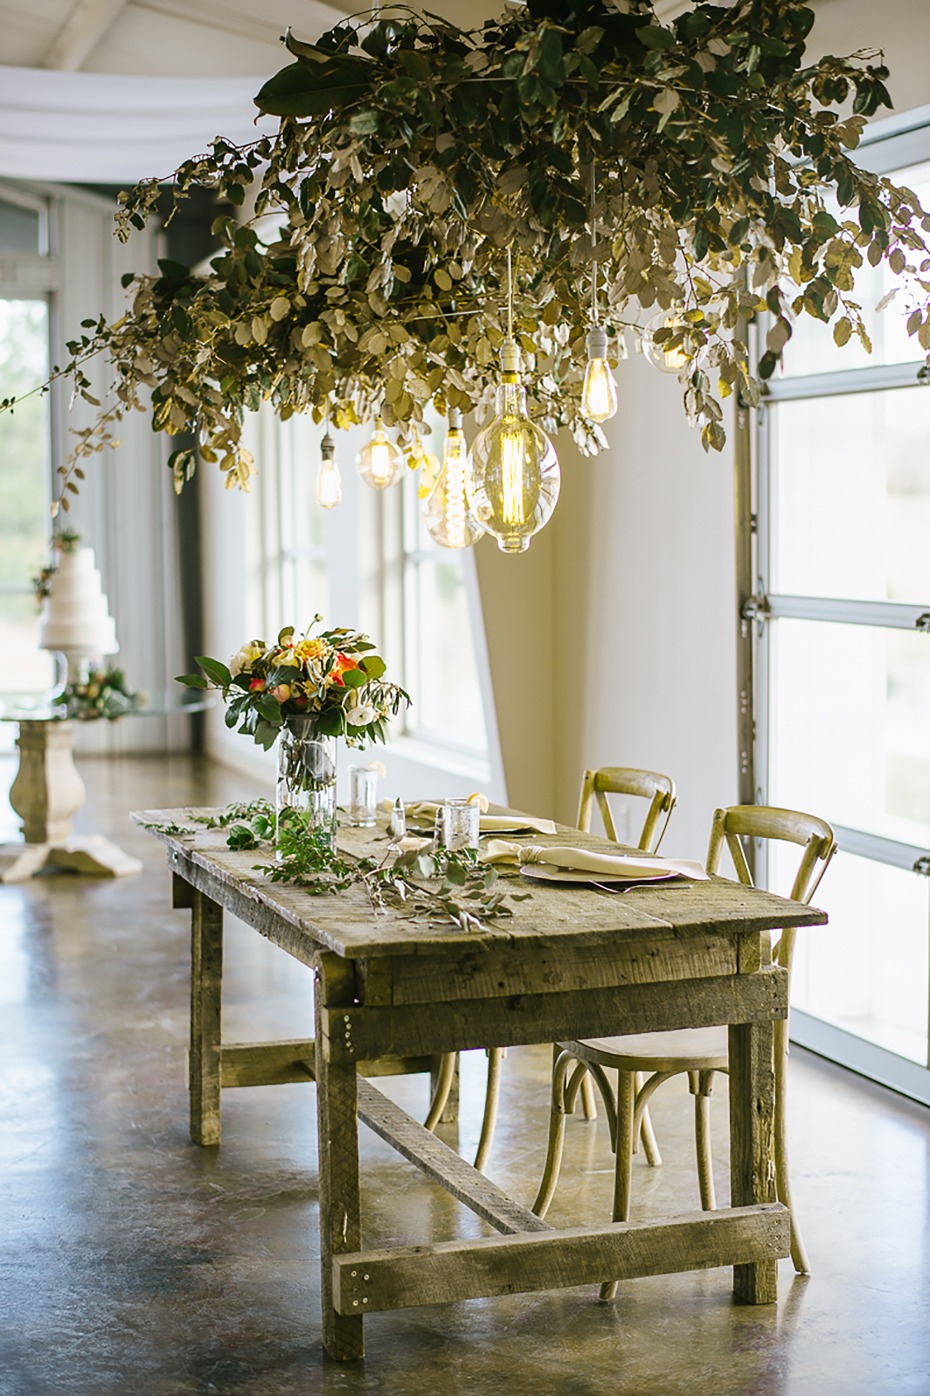 Sweetheart table with greenery and hanging bulbs